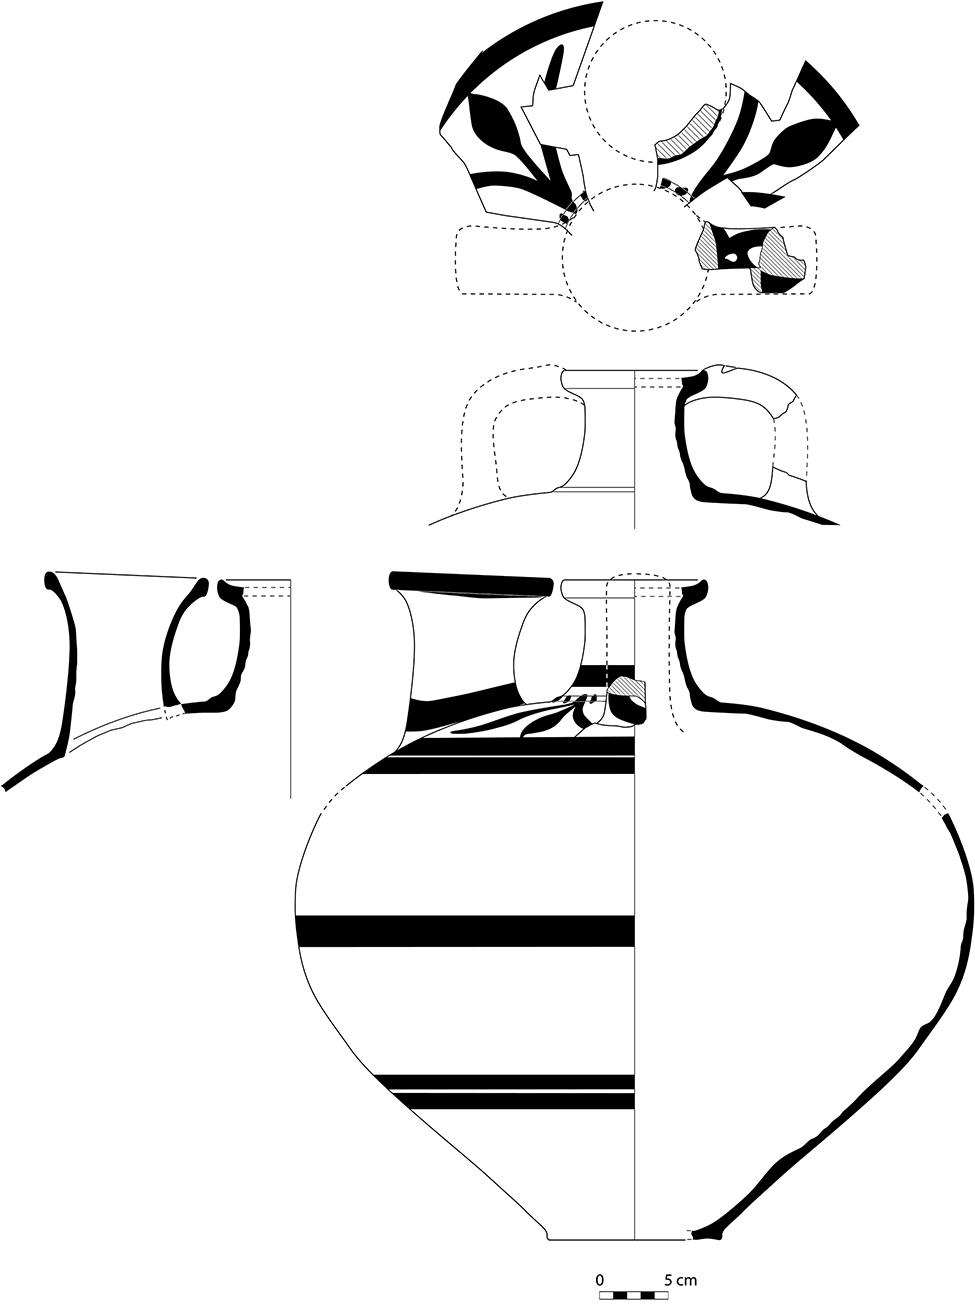 Fig. 12. Transport stirrup jar (P0894) from the burnt destruction debris of the upper story of the Northwest Complex (drawing by T. Ross).